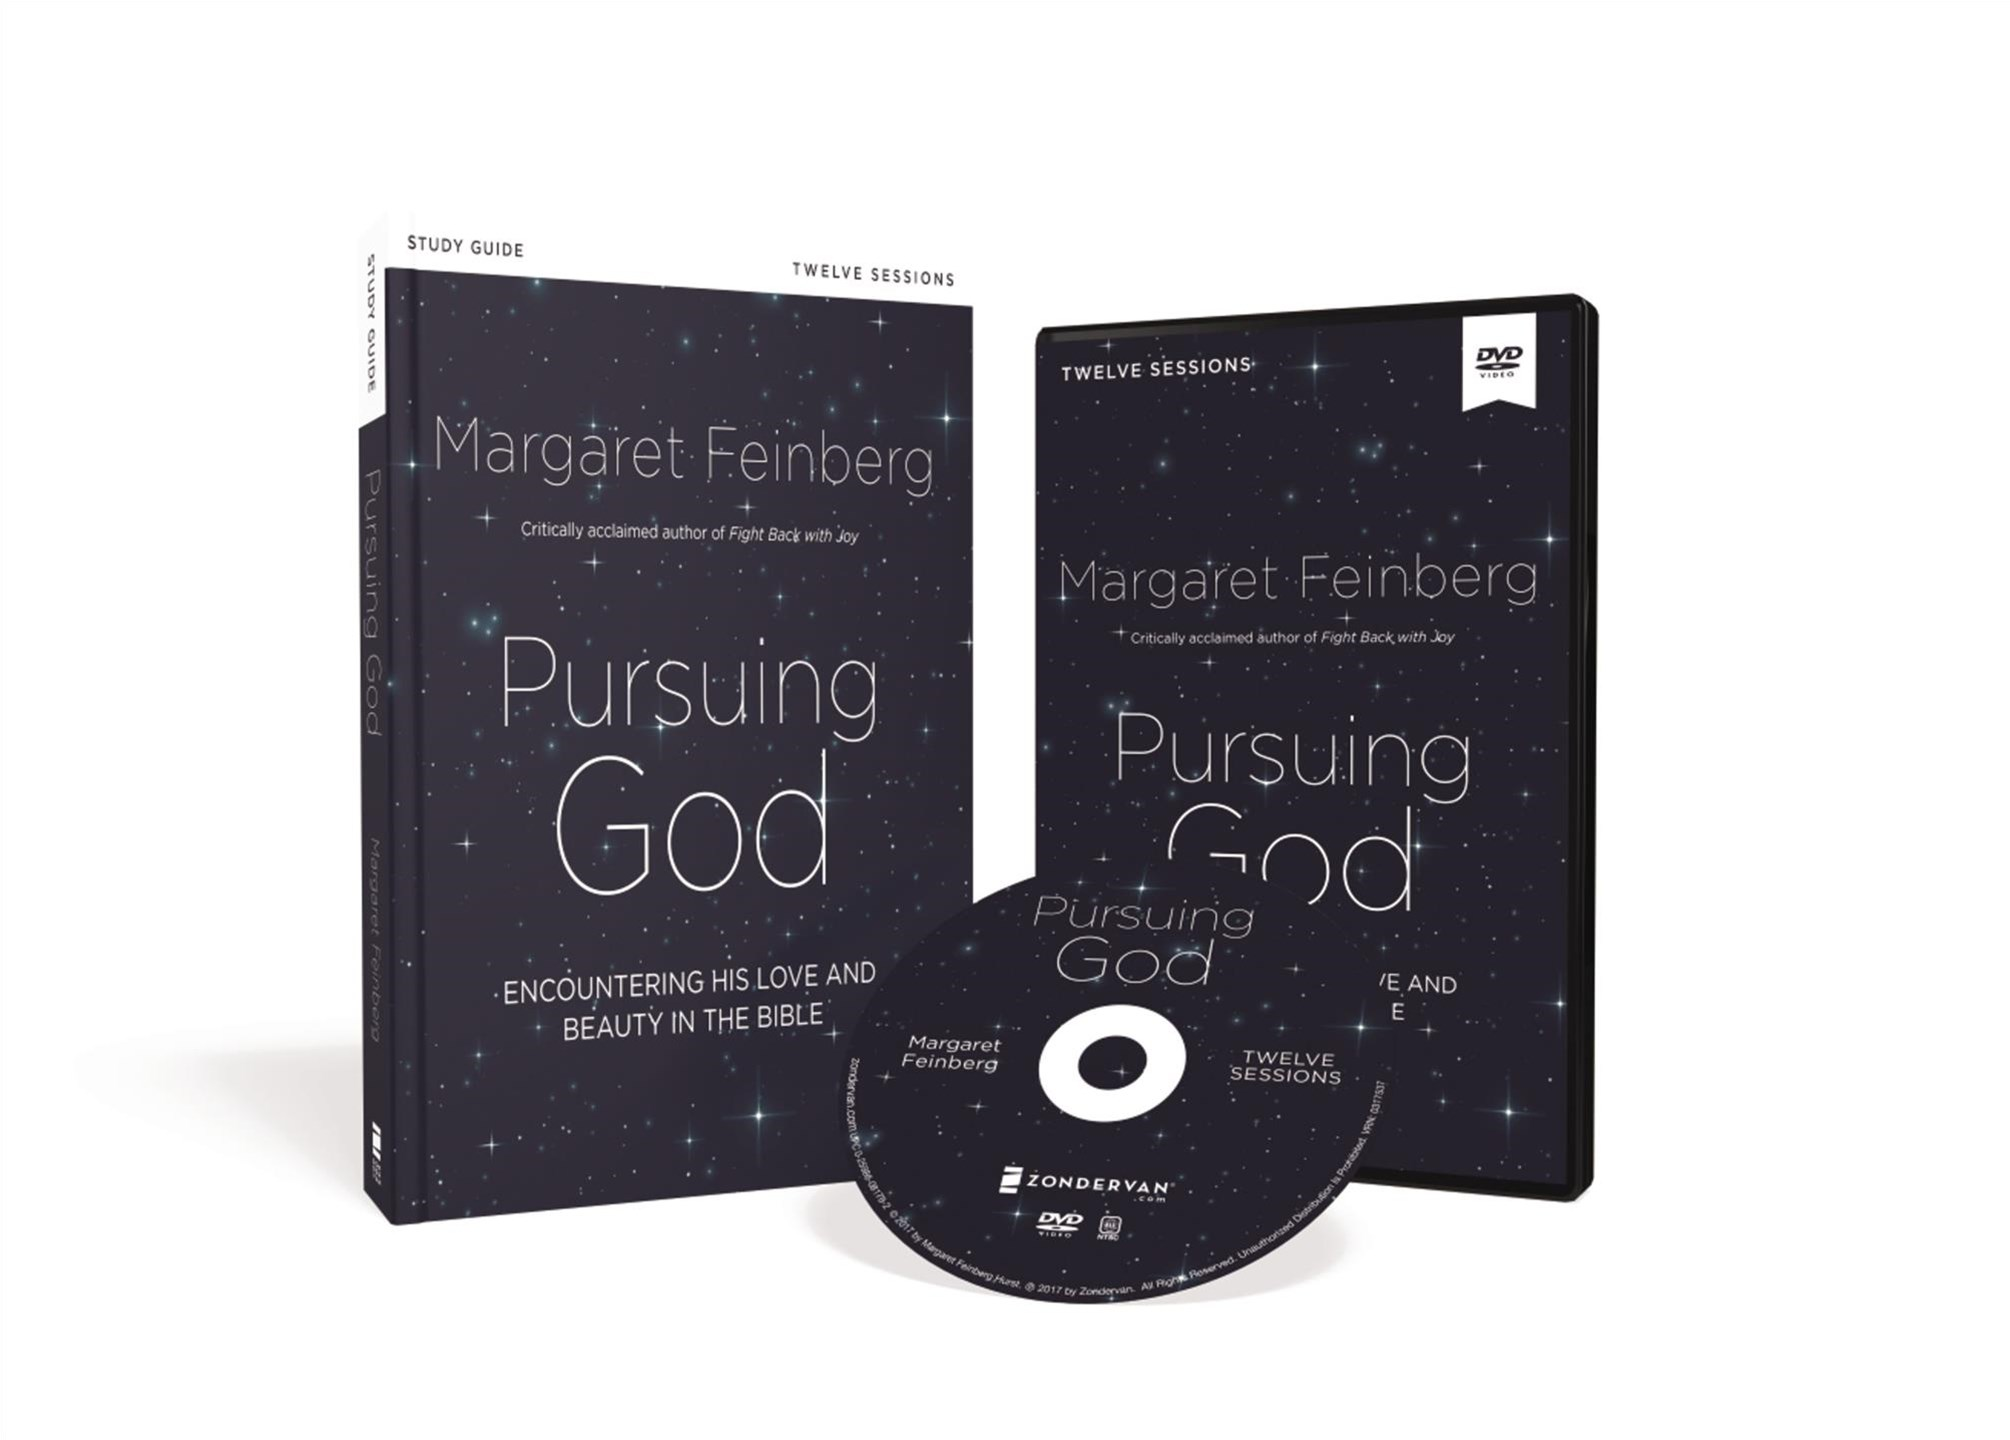 Pursuing God Study Guide With Dvd: Encountering His Love And Beauty In The Bible